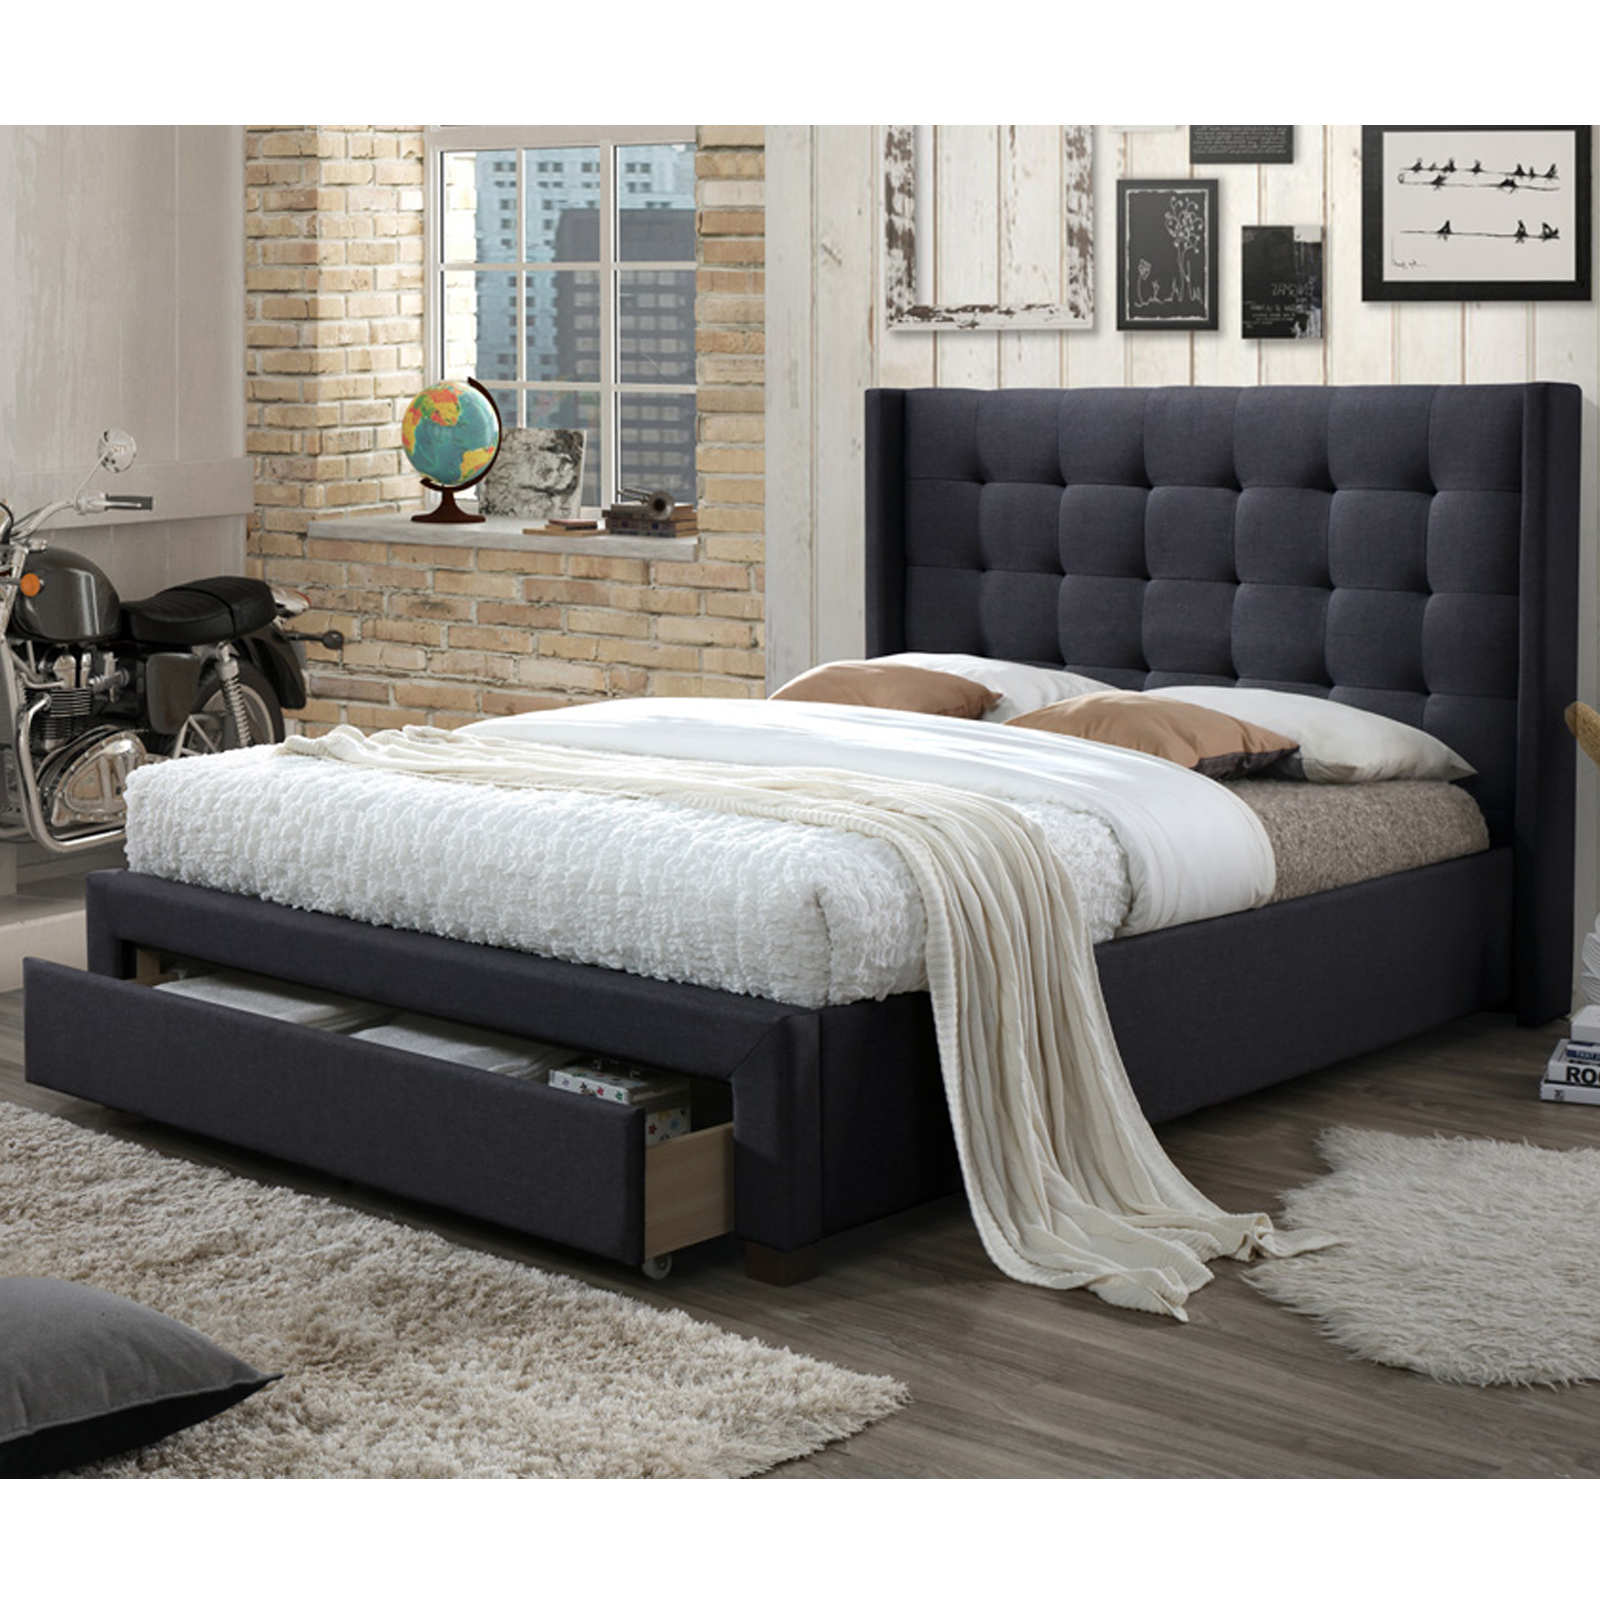 Queen Beds Online Luxury Queen Size Fabric Bed With Buttons And Studs Light Grey